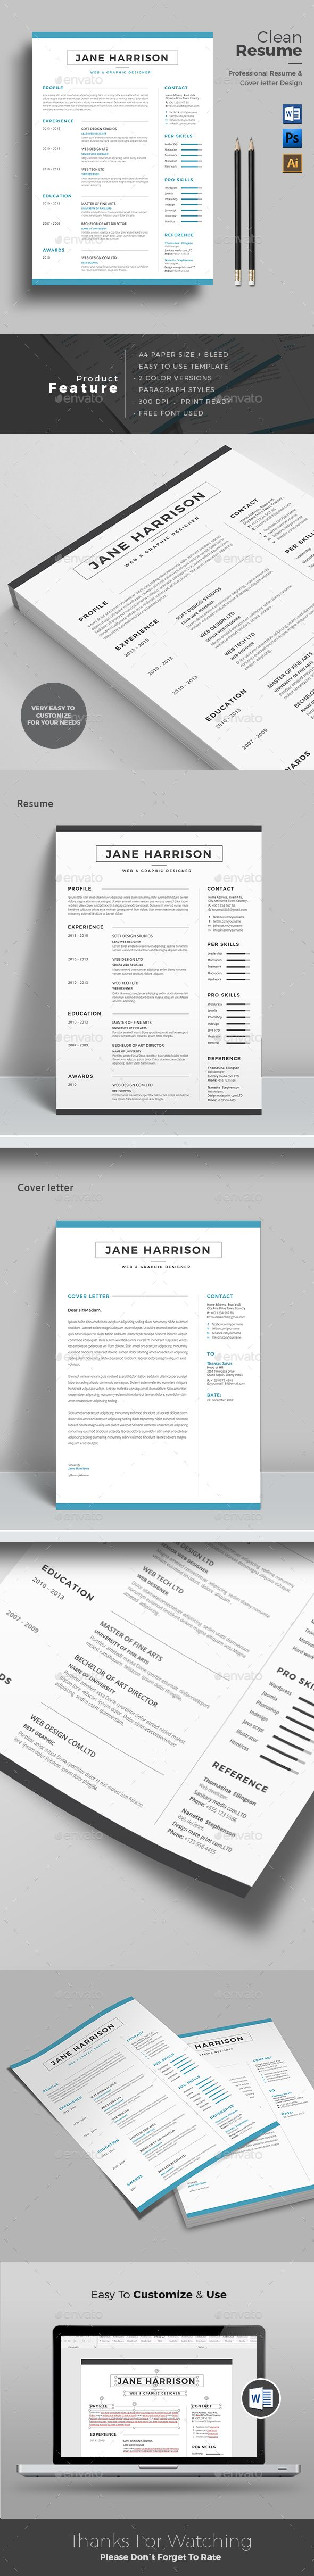 Resume | Template, Microsoft word and Modern resume template